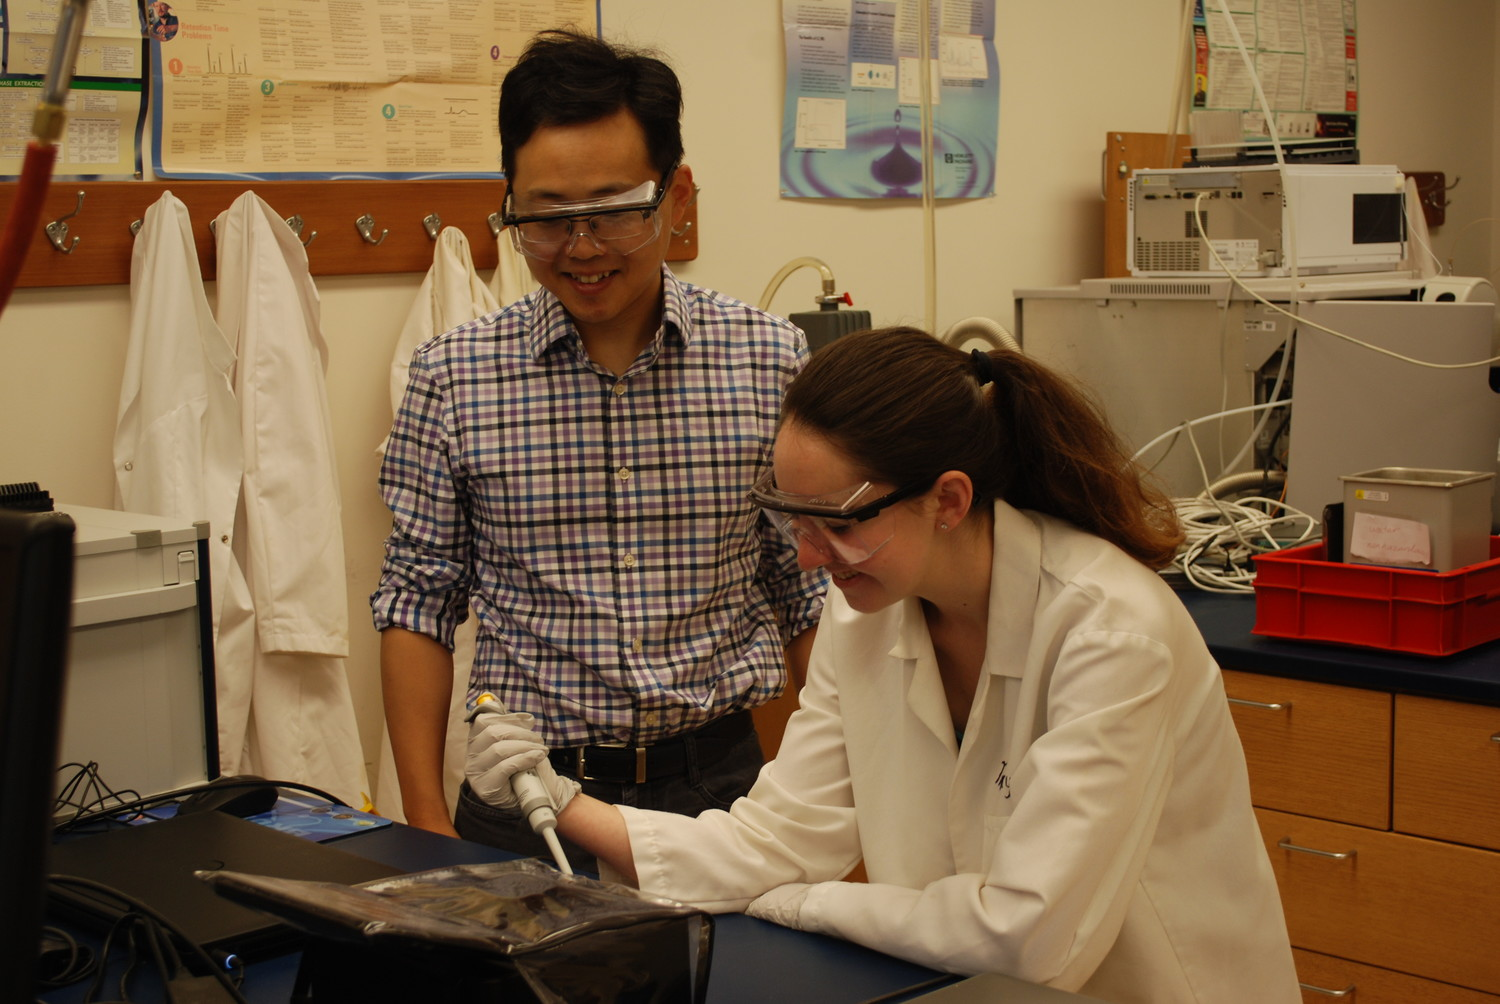 Hofstra Professor Ling Huang, left, has mentored incoming senior Nicole Homburger in multiple scientific pursuits. He was honored by Hofstra University on May 18 as its 2018 Mentor of the Year.